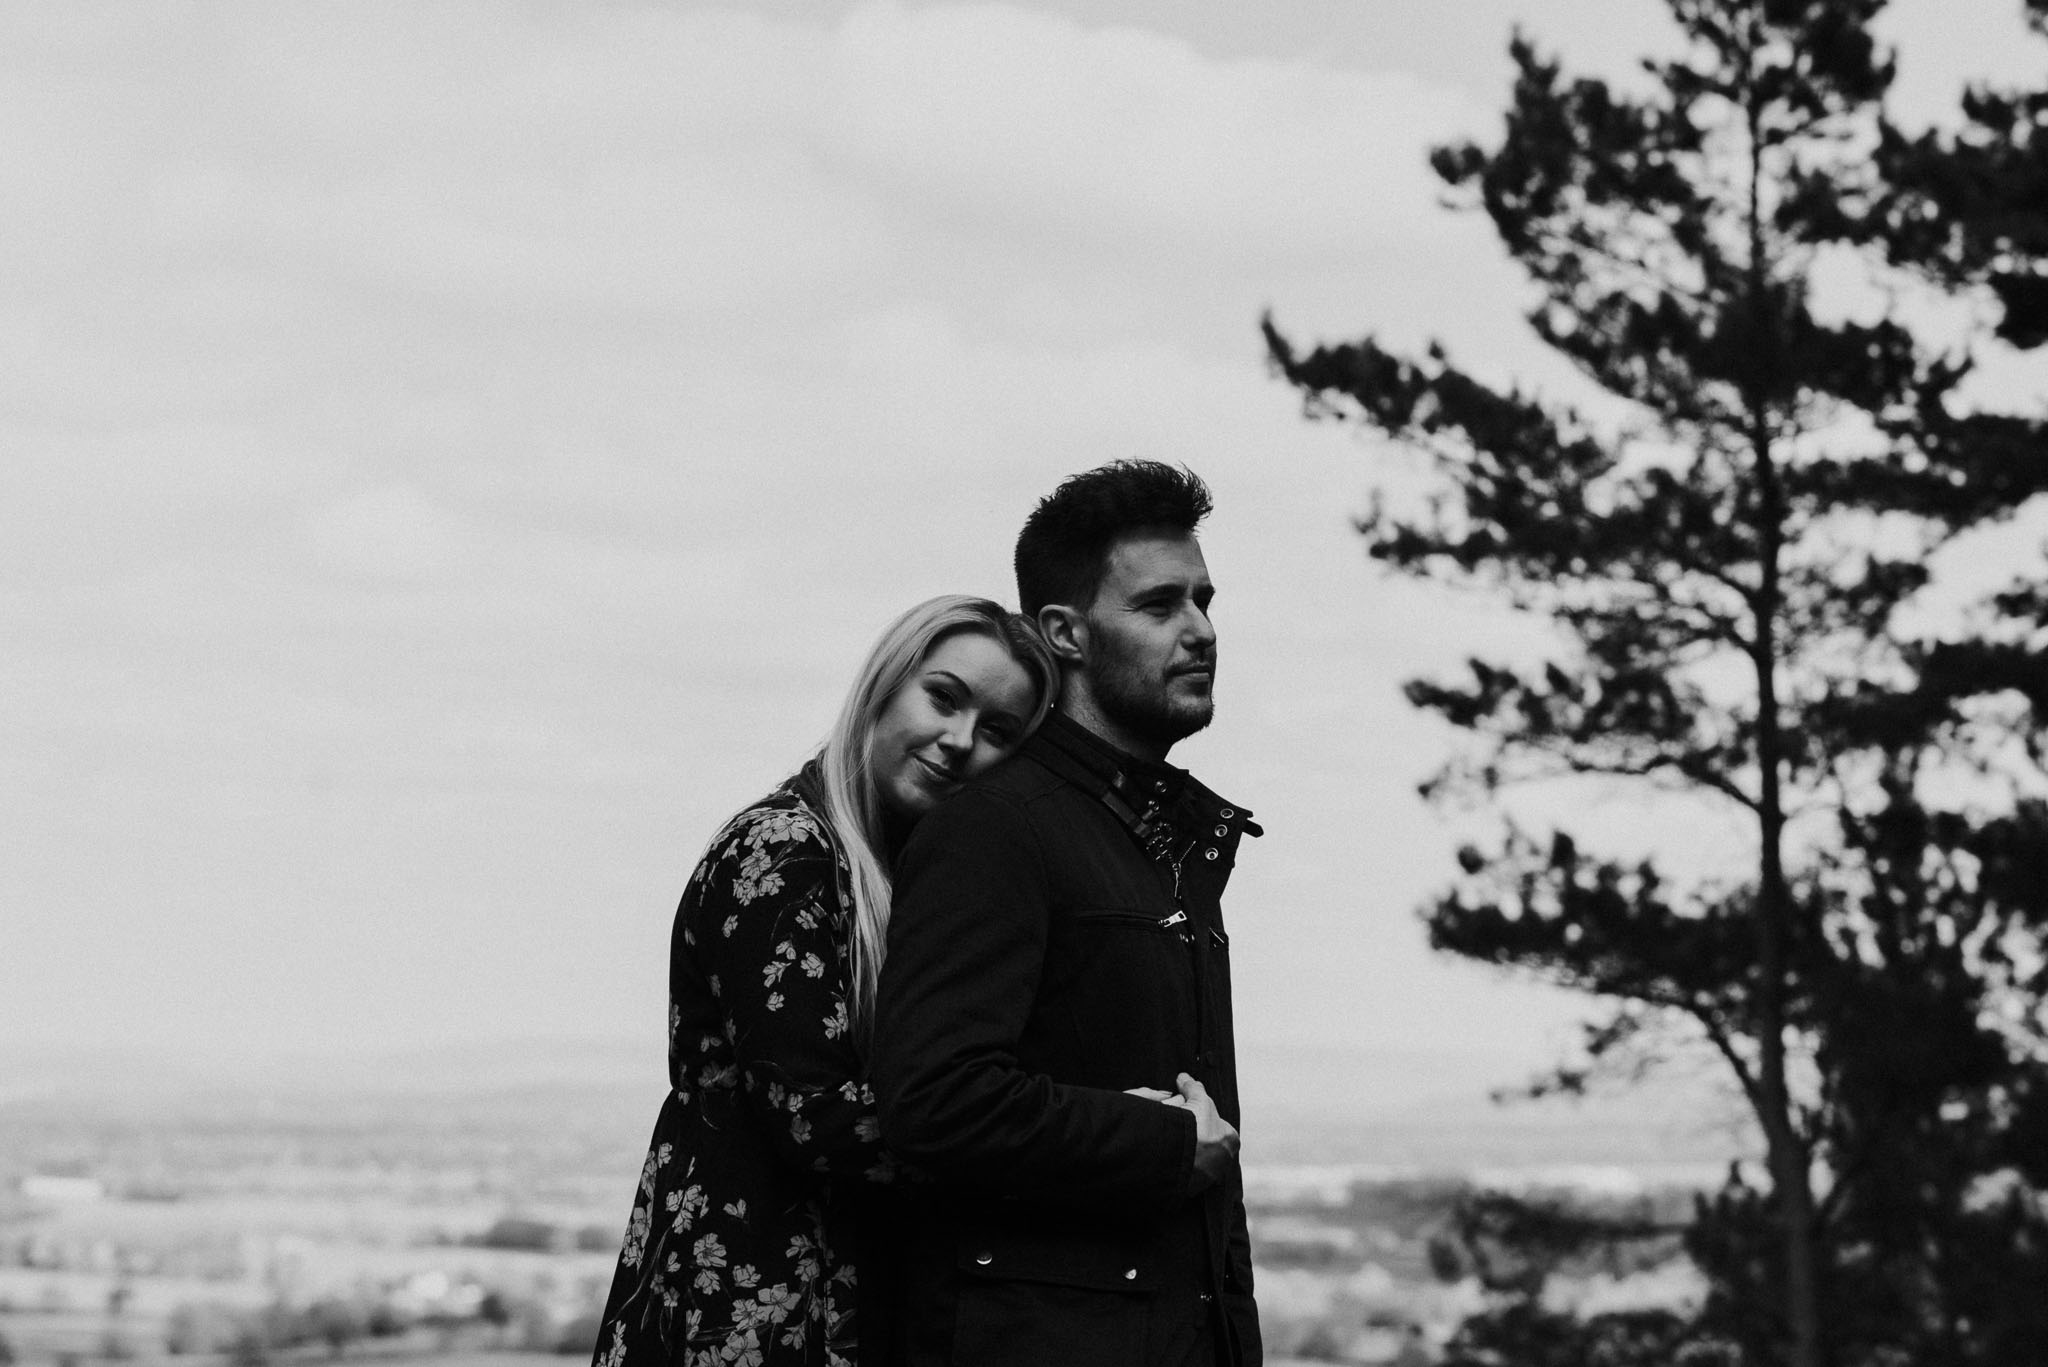 Engagement wedding photography by the Flintshire wedding photographer, covering alternative weddings in the North West